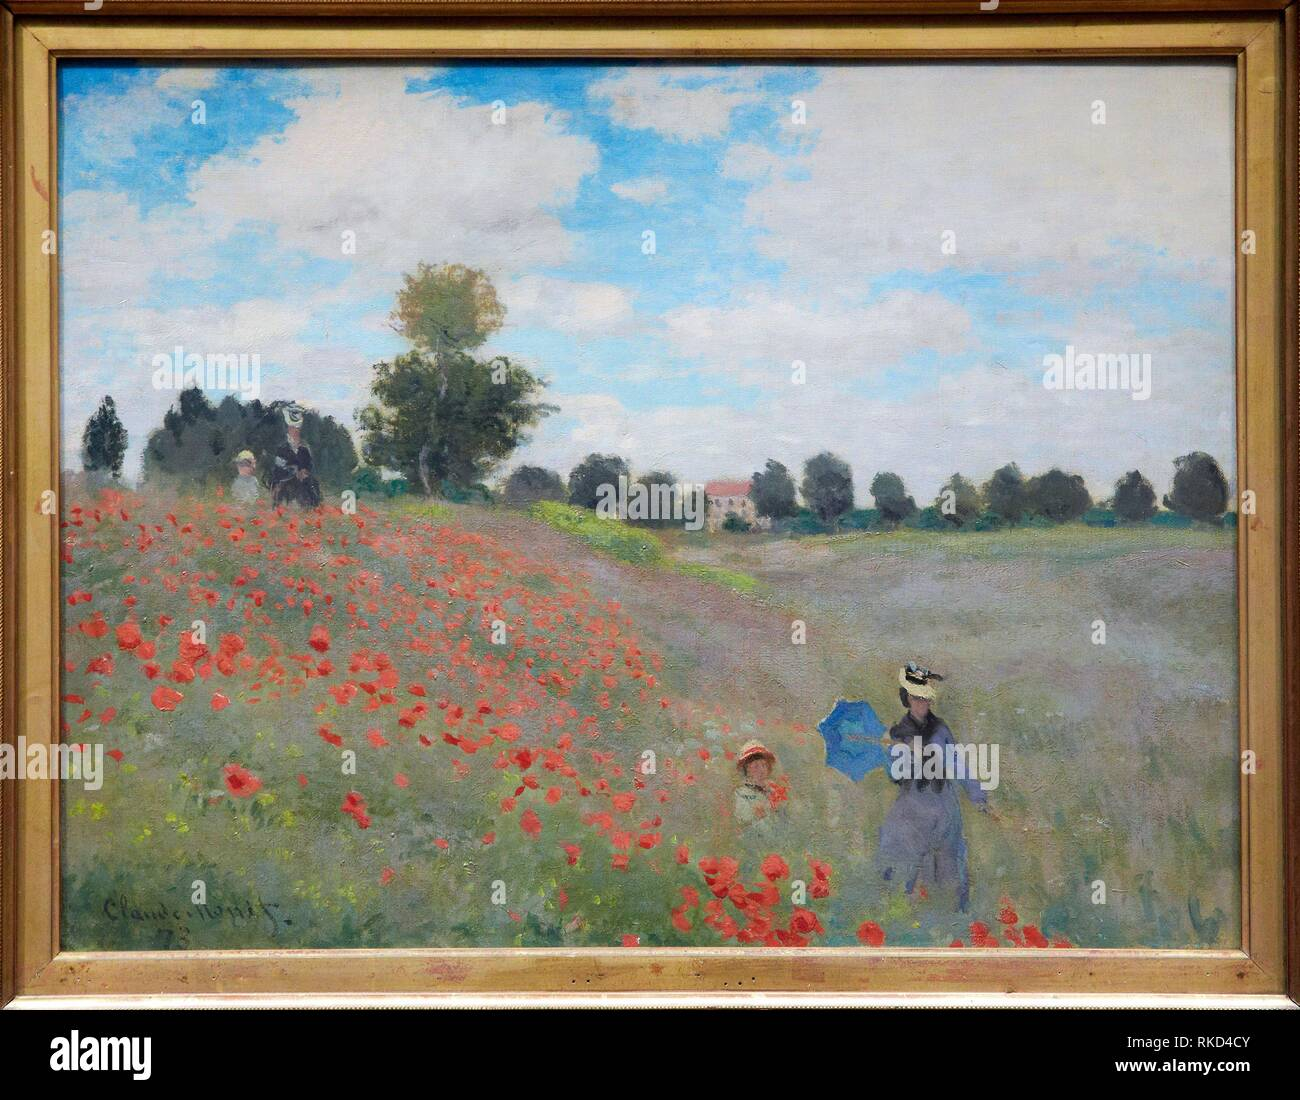 '''Poppies at Argenteuil'', 1873, by Claude Monet (1840-1926), oil on canvas, 50x60 cm. Musée d'Orsay. Orsay Museum. Paris. France. - Stock Image